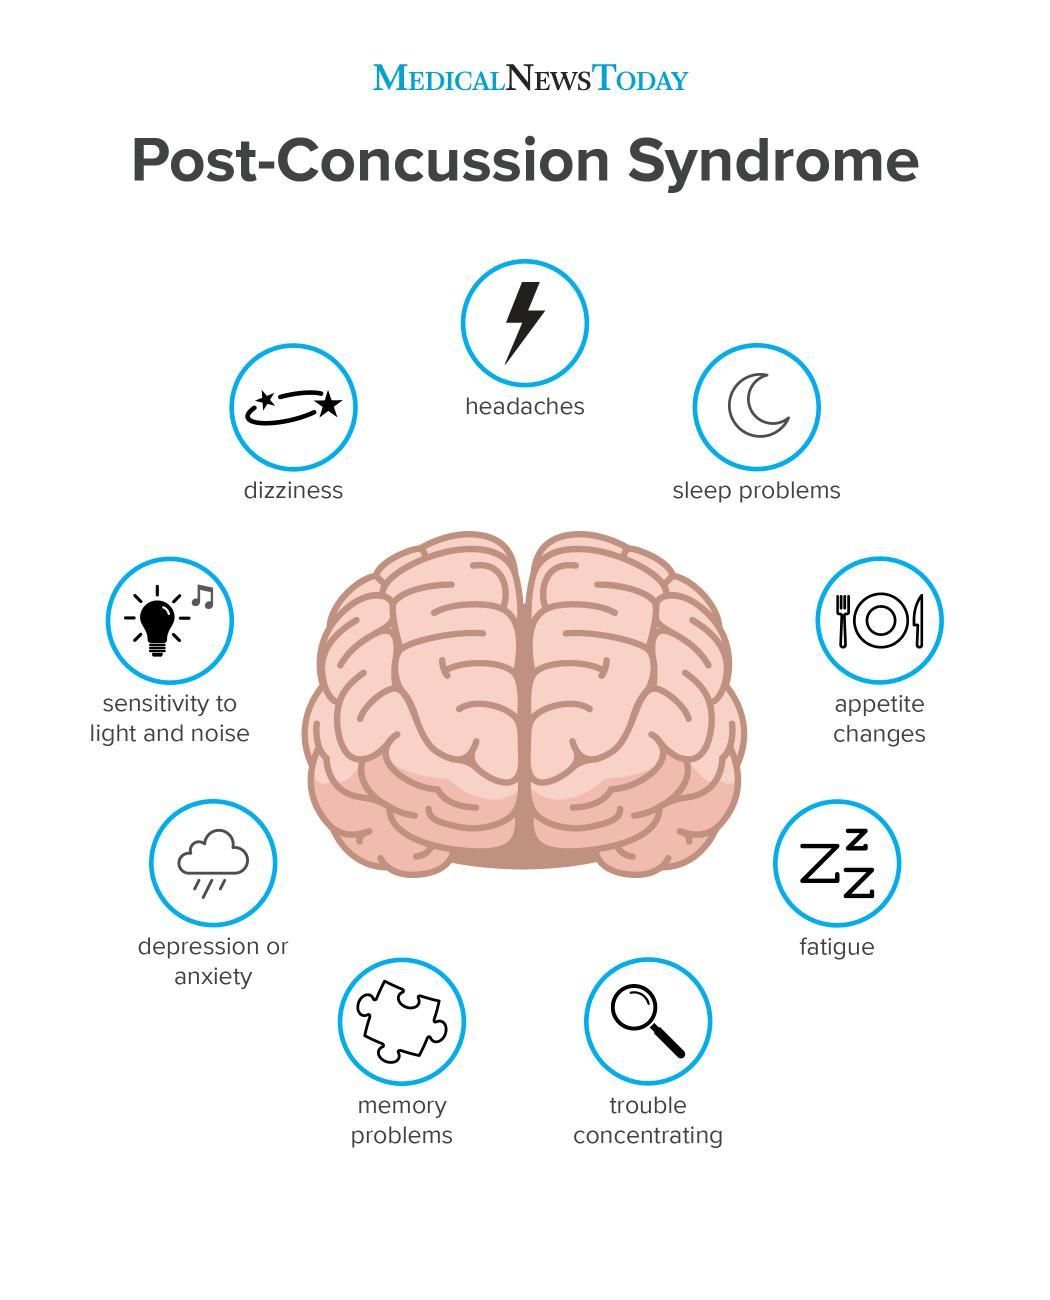 Post-concussion syndrome: Symptoms, treatment, and outlook